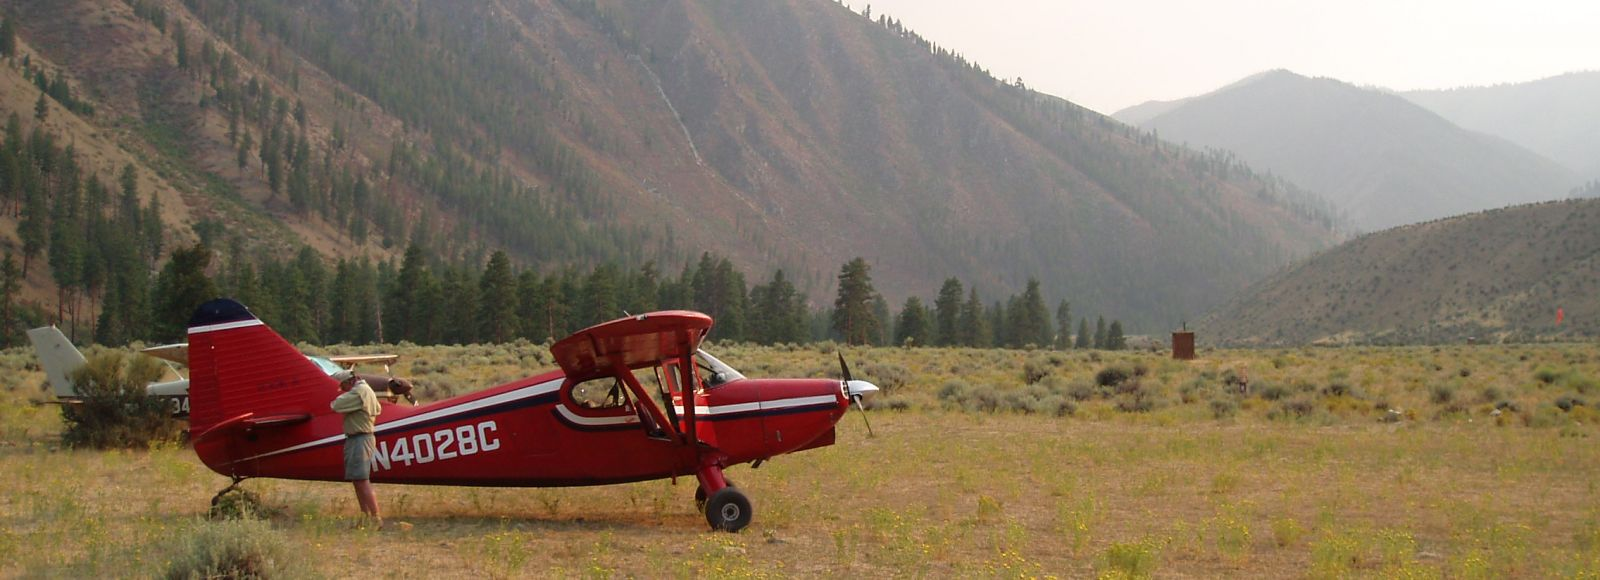 red airplane out in a mountain meadow